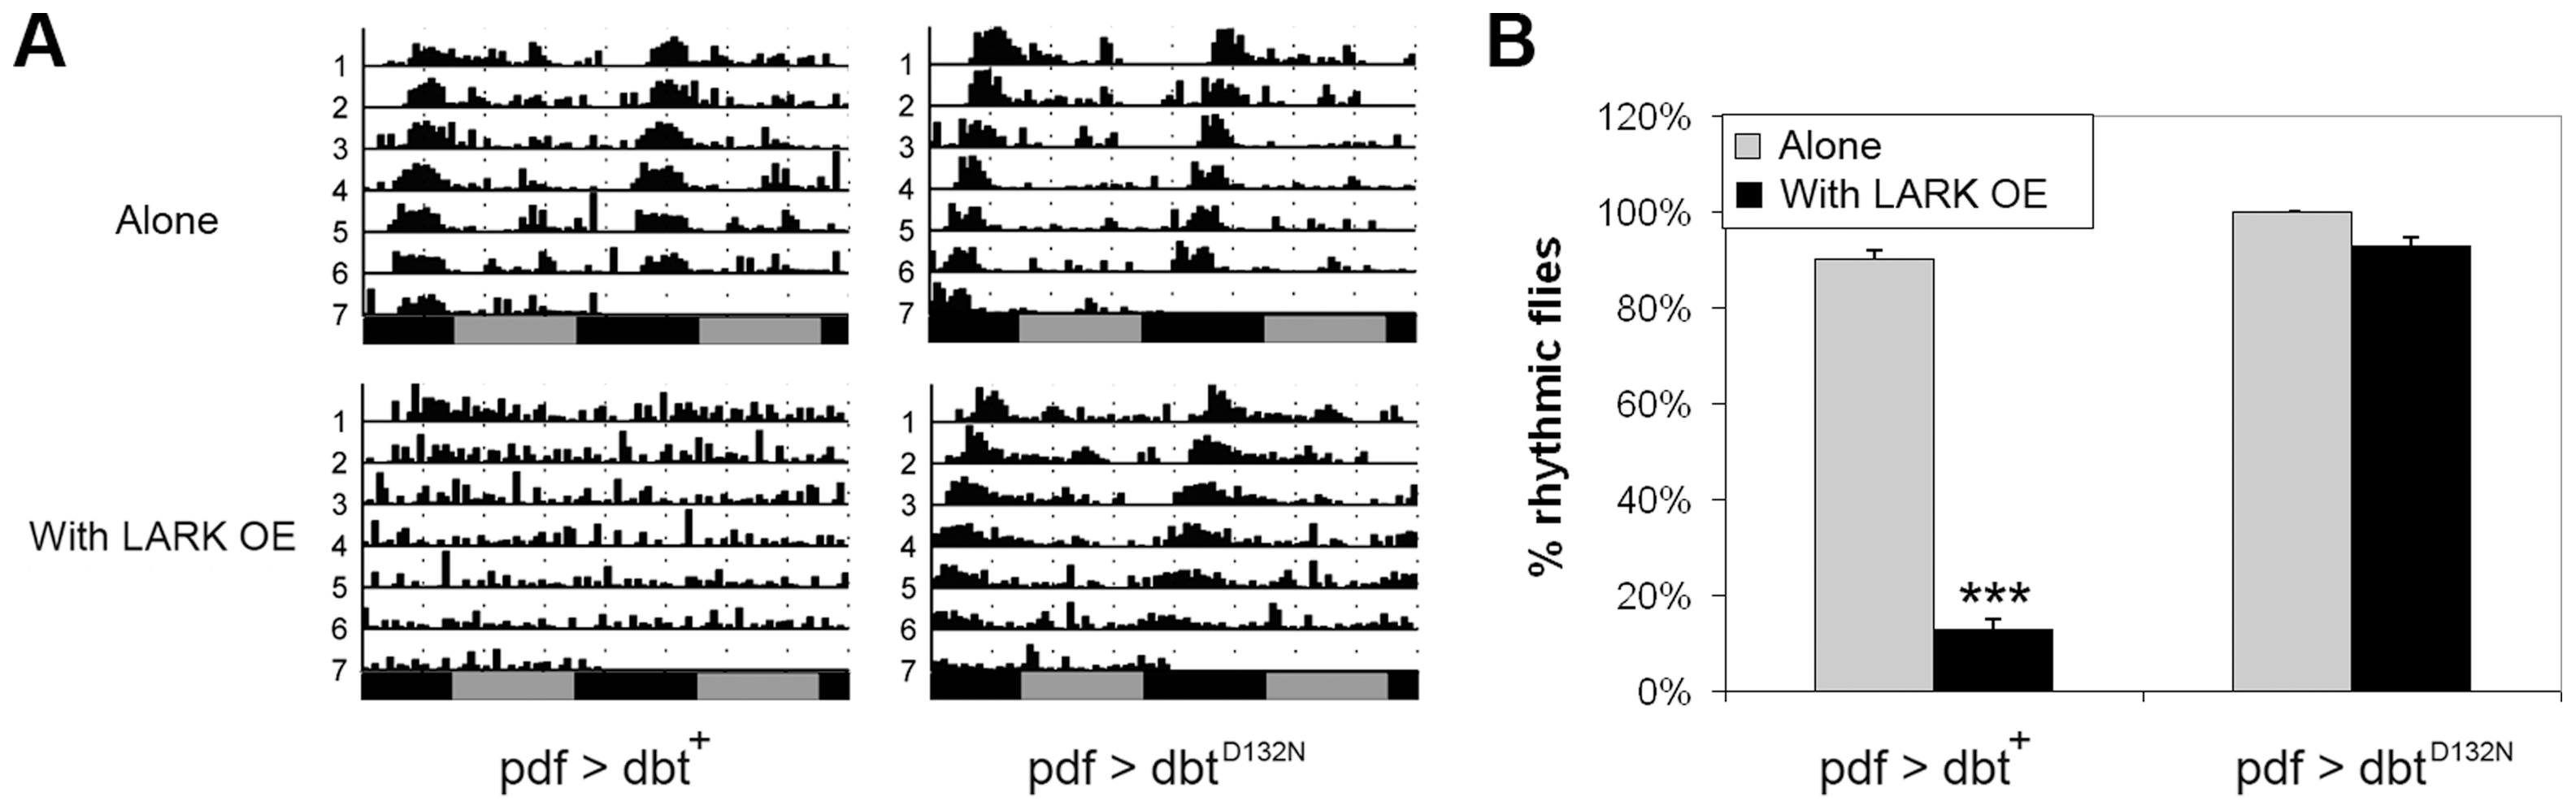 DBT kinase activity is required for the LARK OE phenotype.